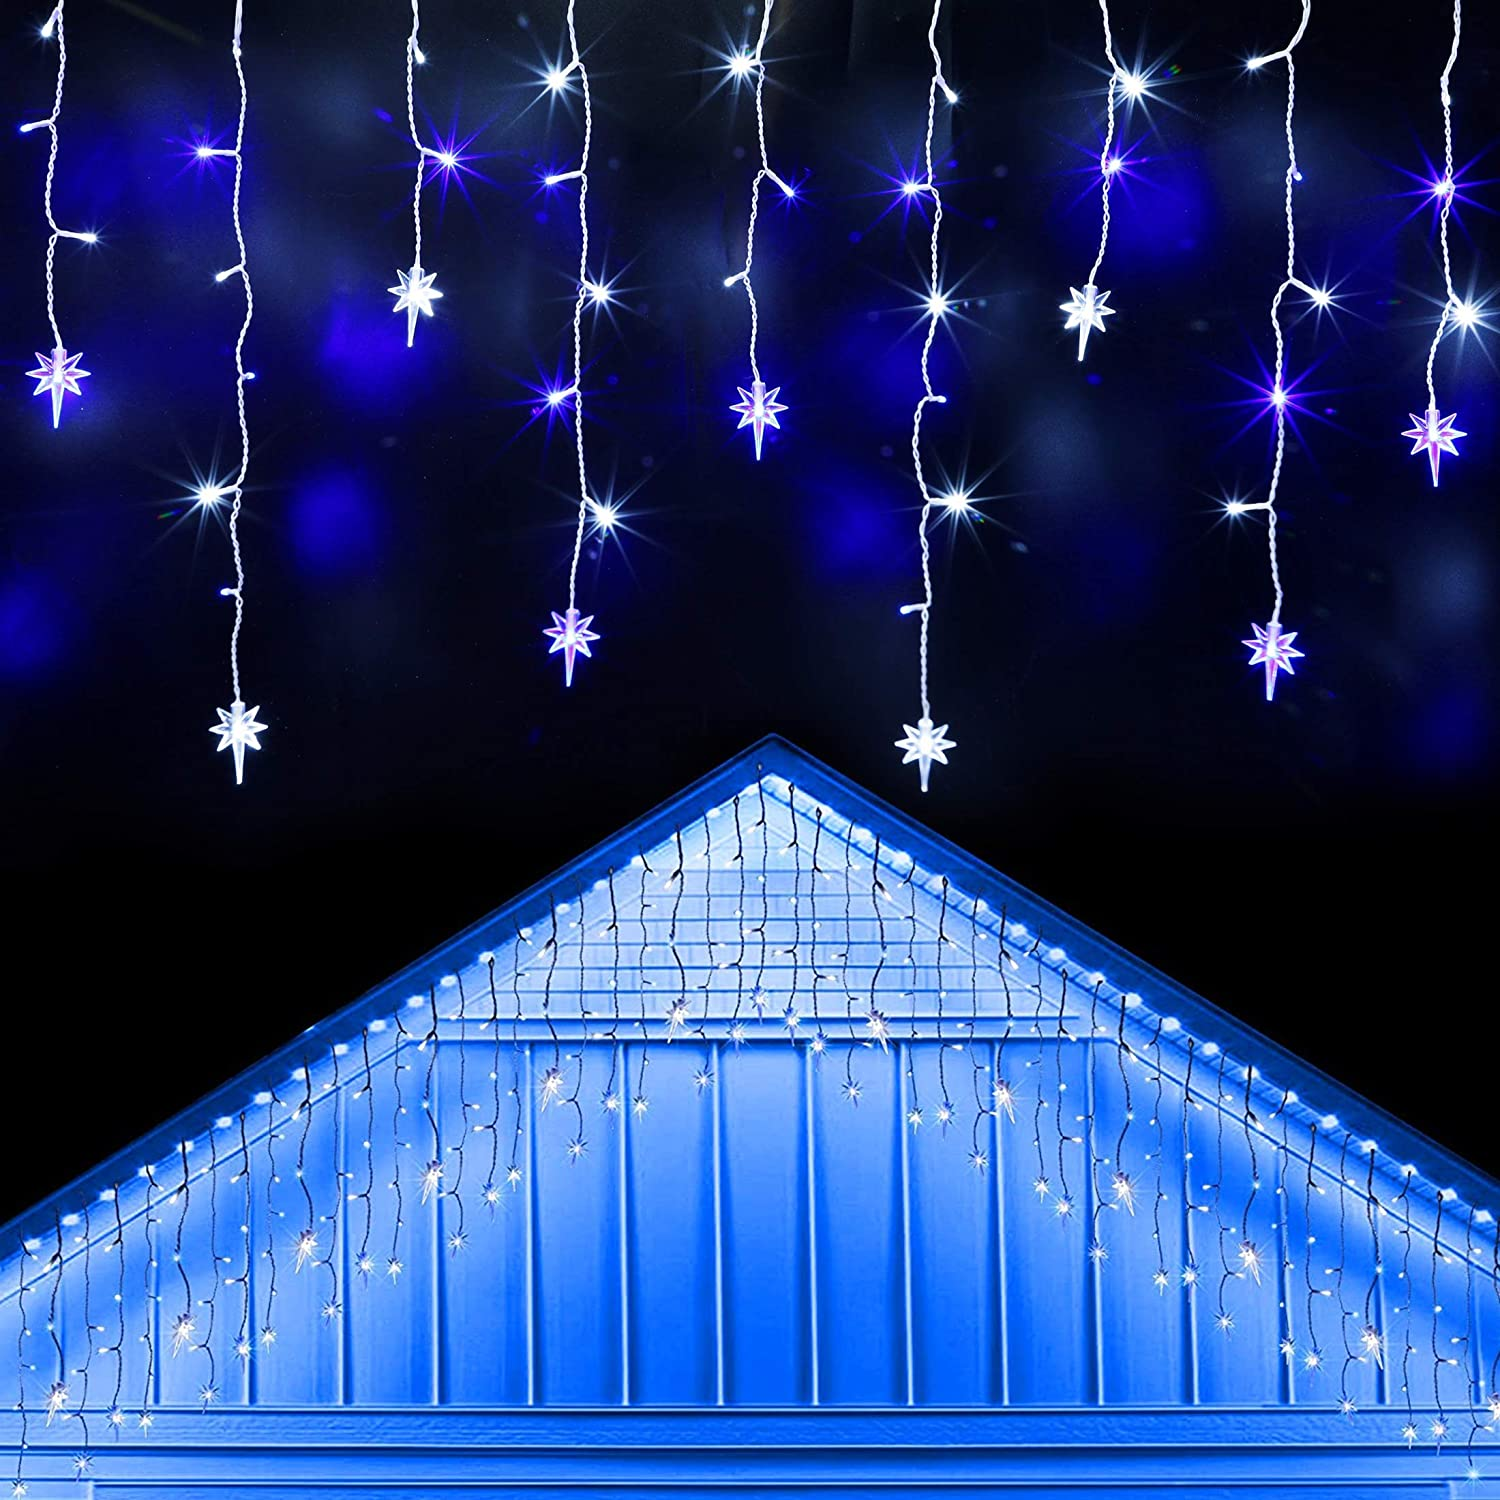 Twinkle Star Icicle Lights with Star, Outdoor Dripping Christmas Light with Bethlehem Star, 150LED 8 Modes White Wire Curtain Lights 30 Drops, Indoor Xmas Holiday Wedding Party Decor, White & Blue